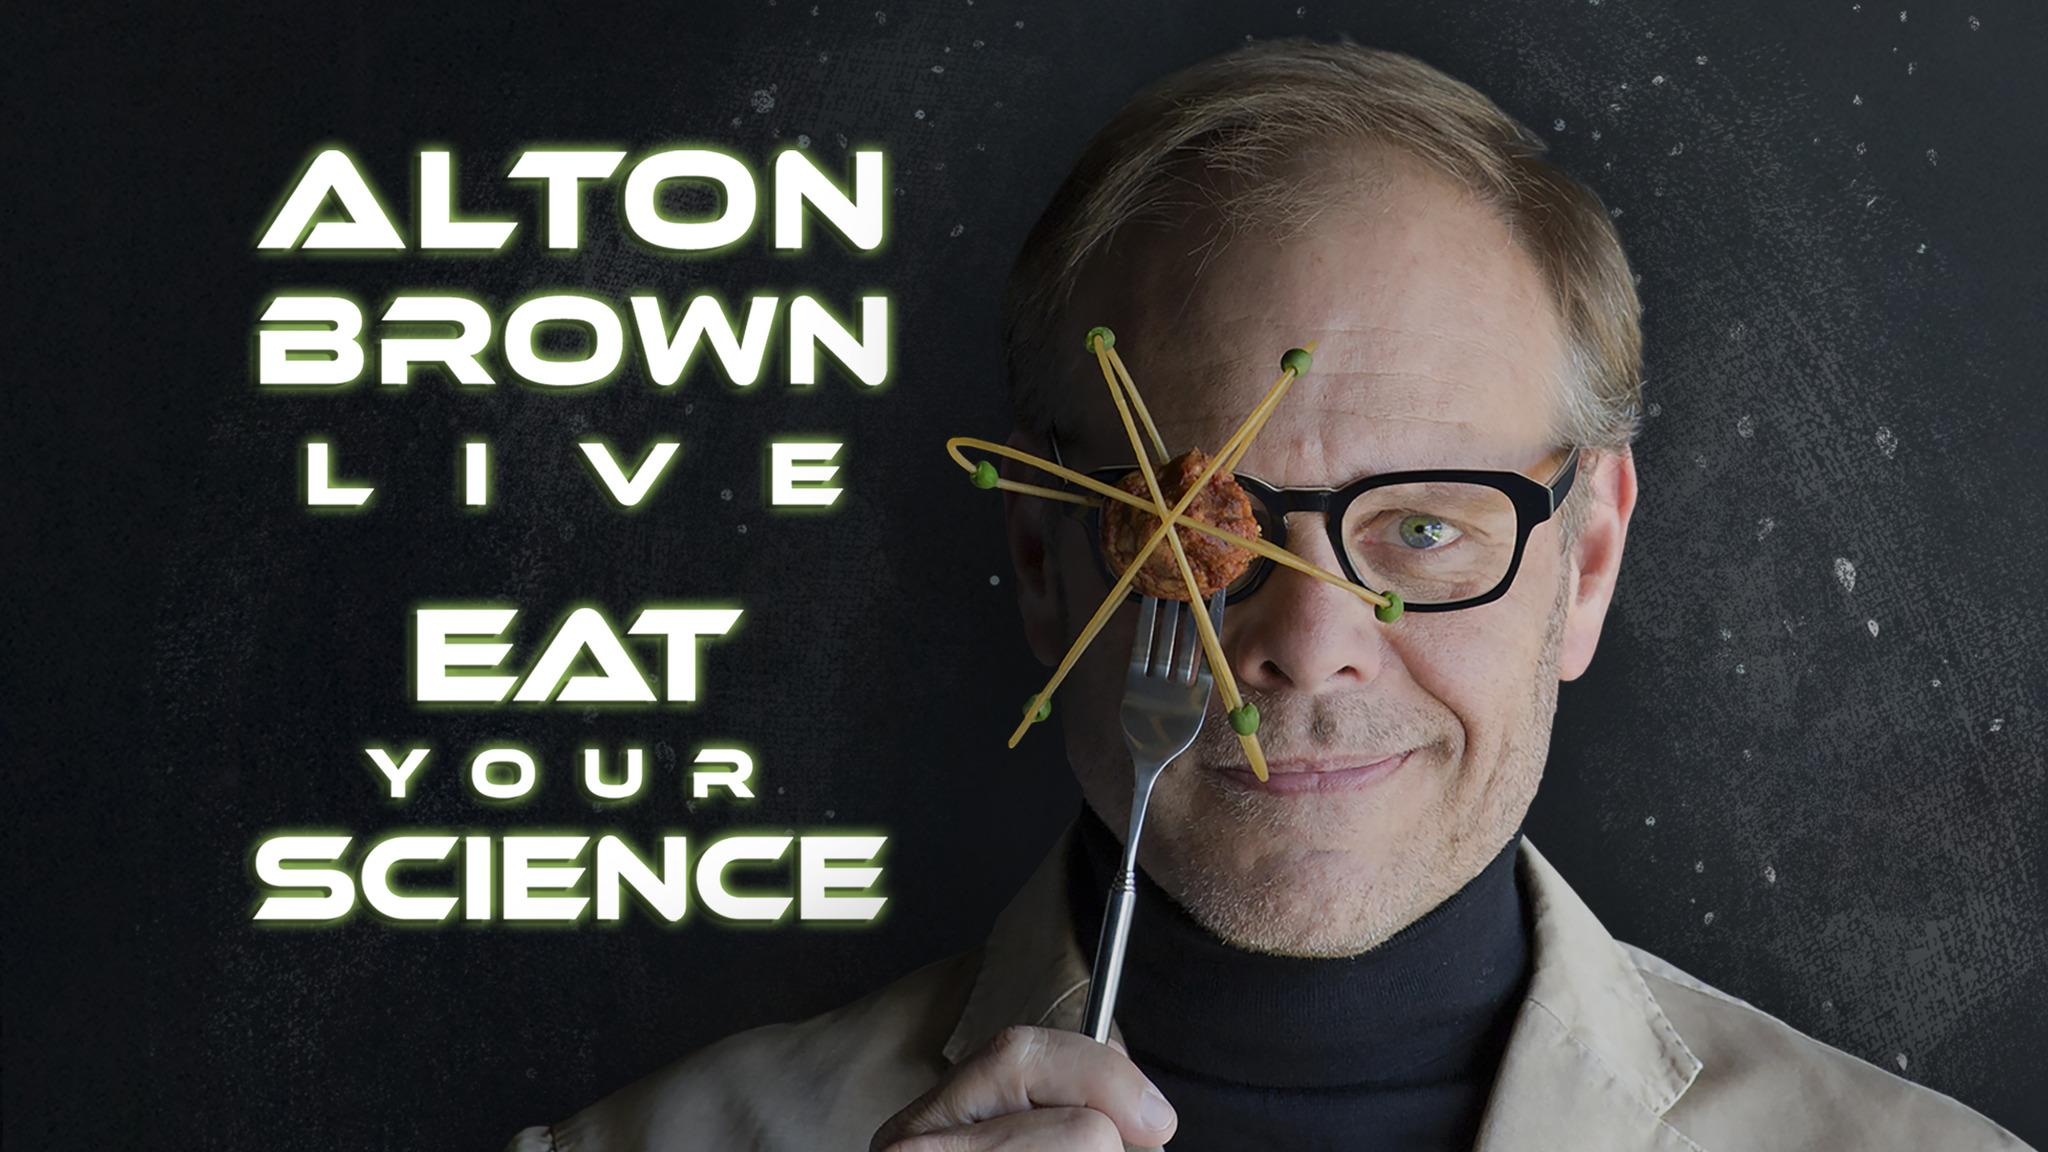 Alton Brown at Indiana University Auditorium